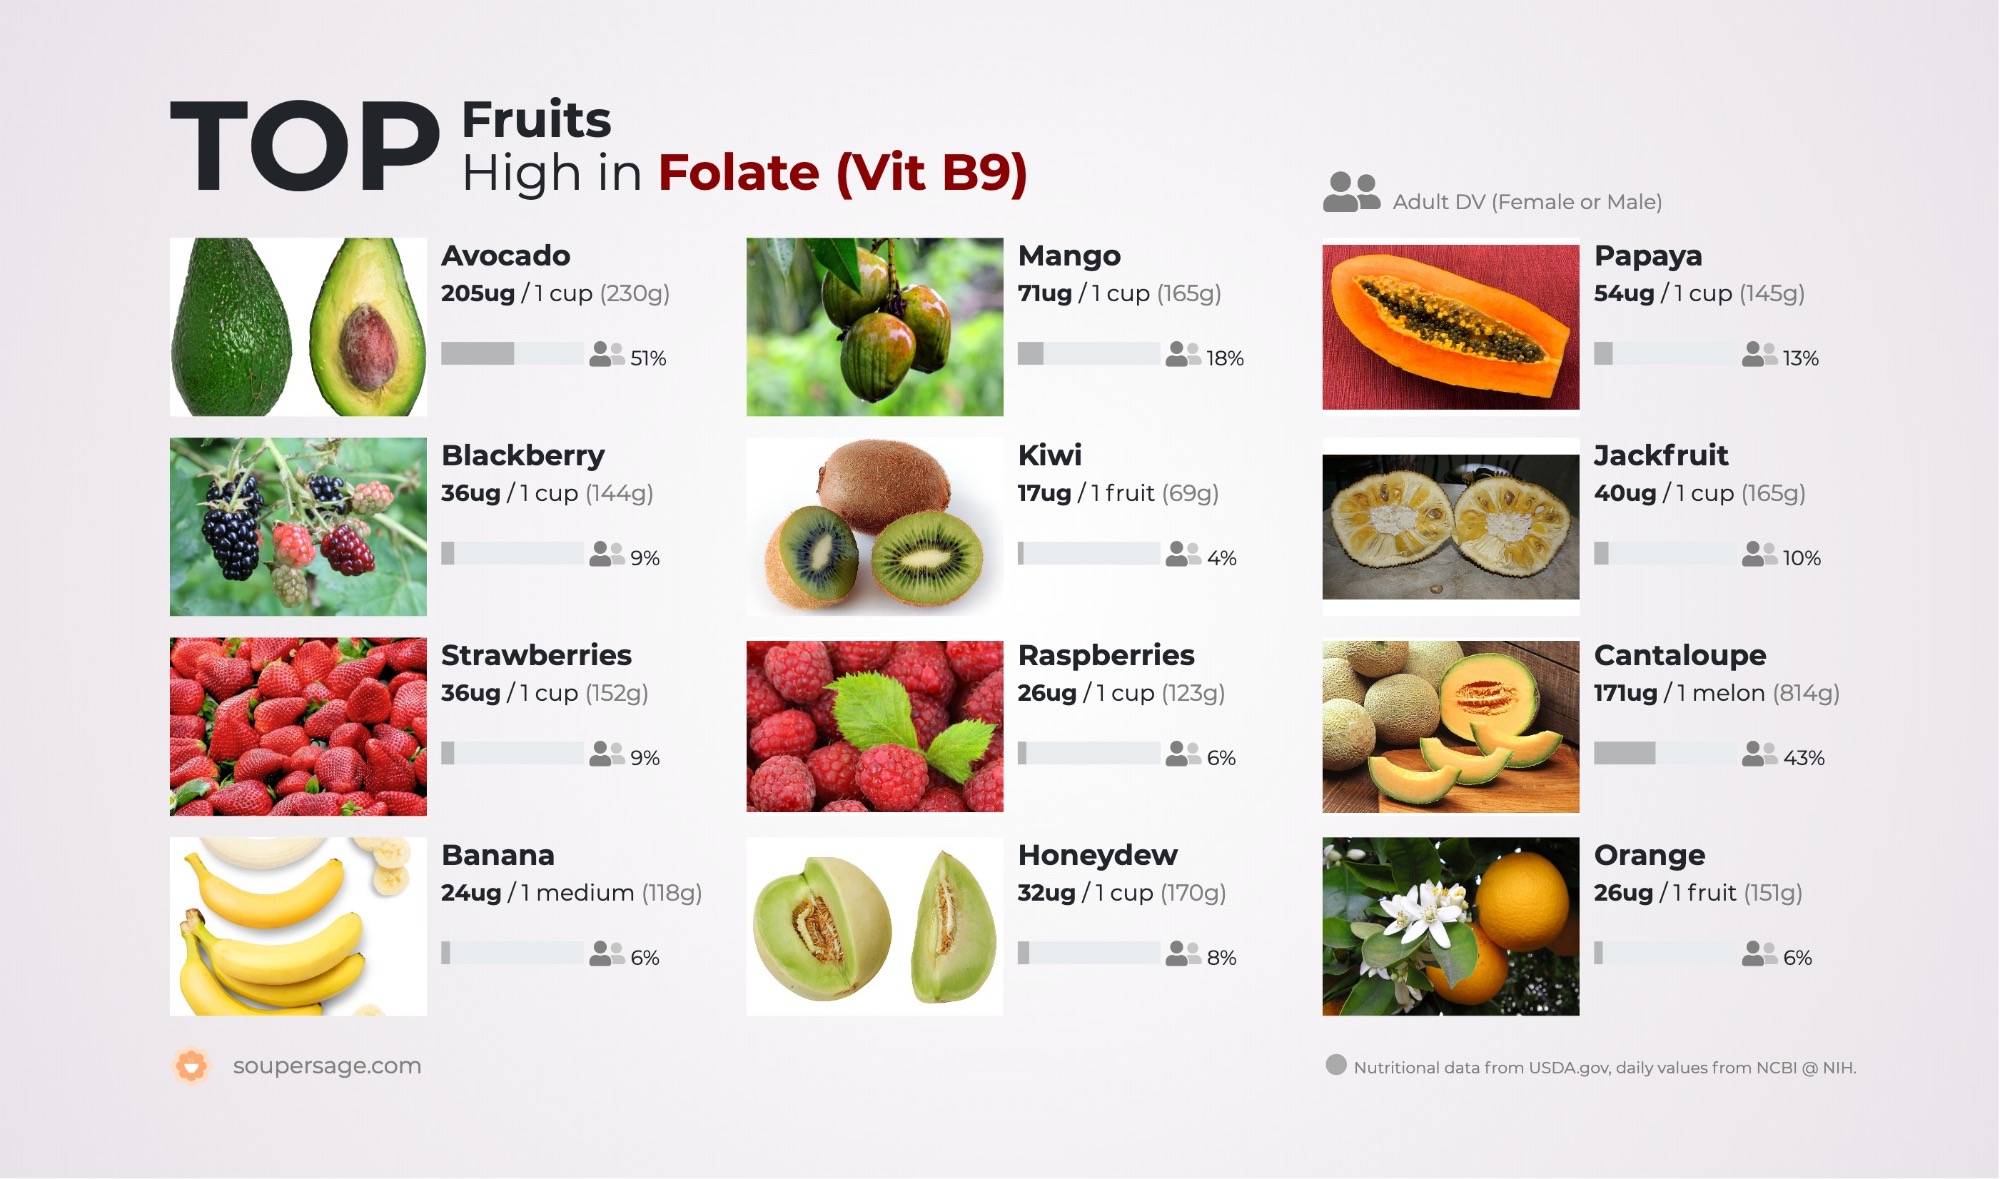 image of Top Fruits High in Folate (Vit B9)